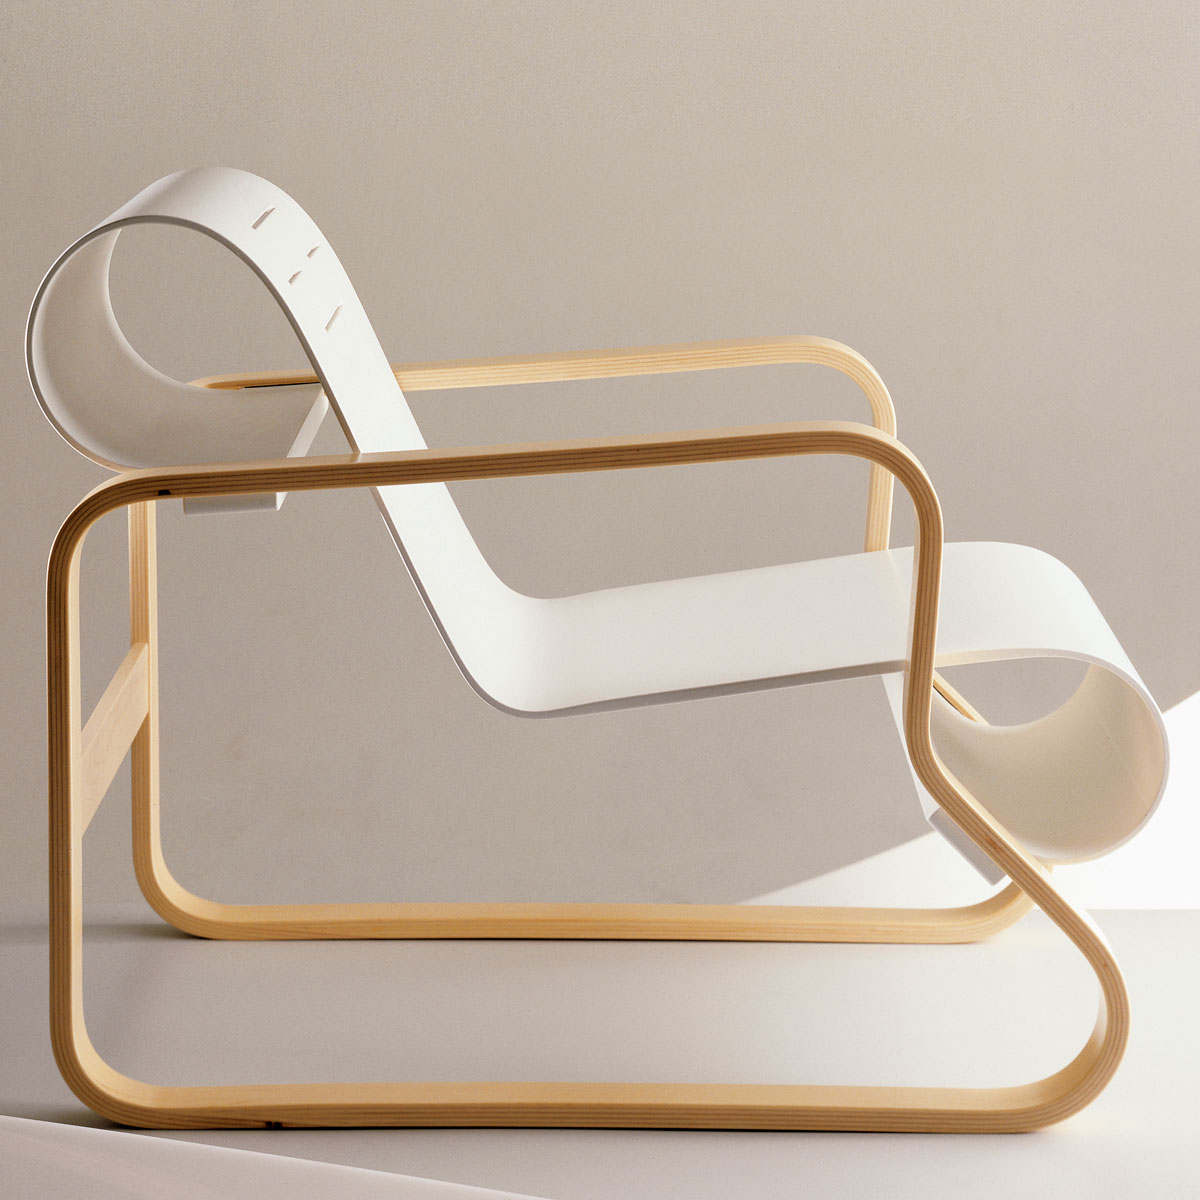 Artek Alvar Aalto 41 Paimio Scroll Chair Made In Finland